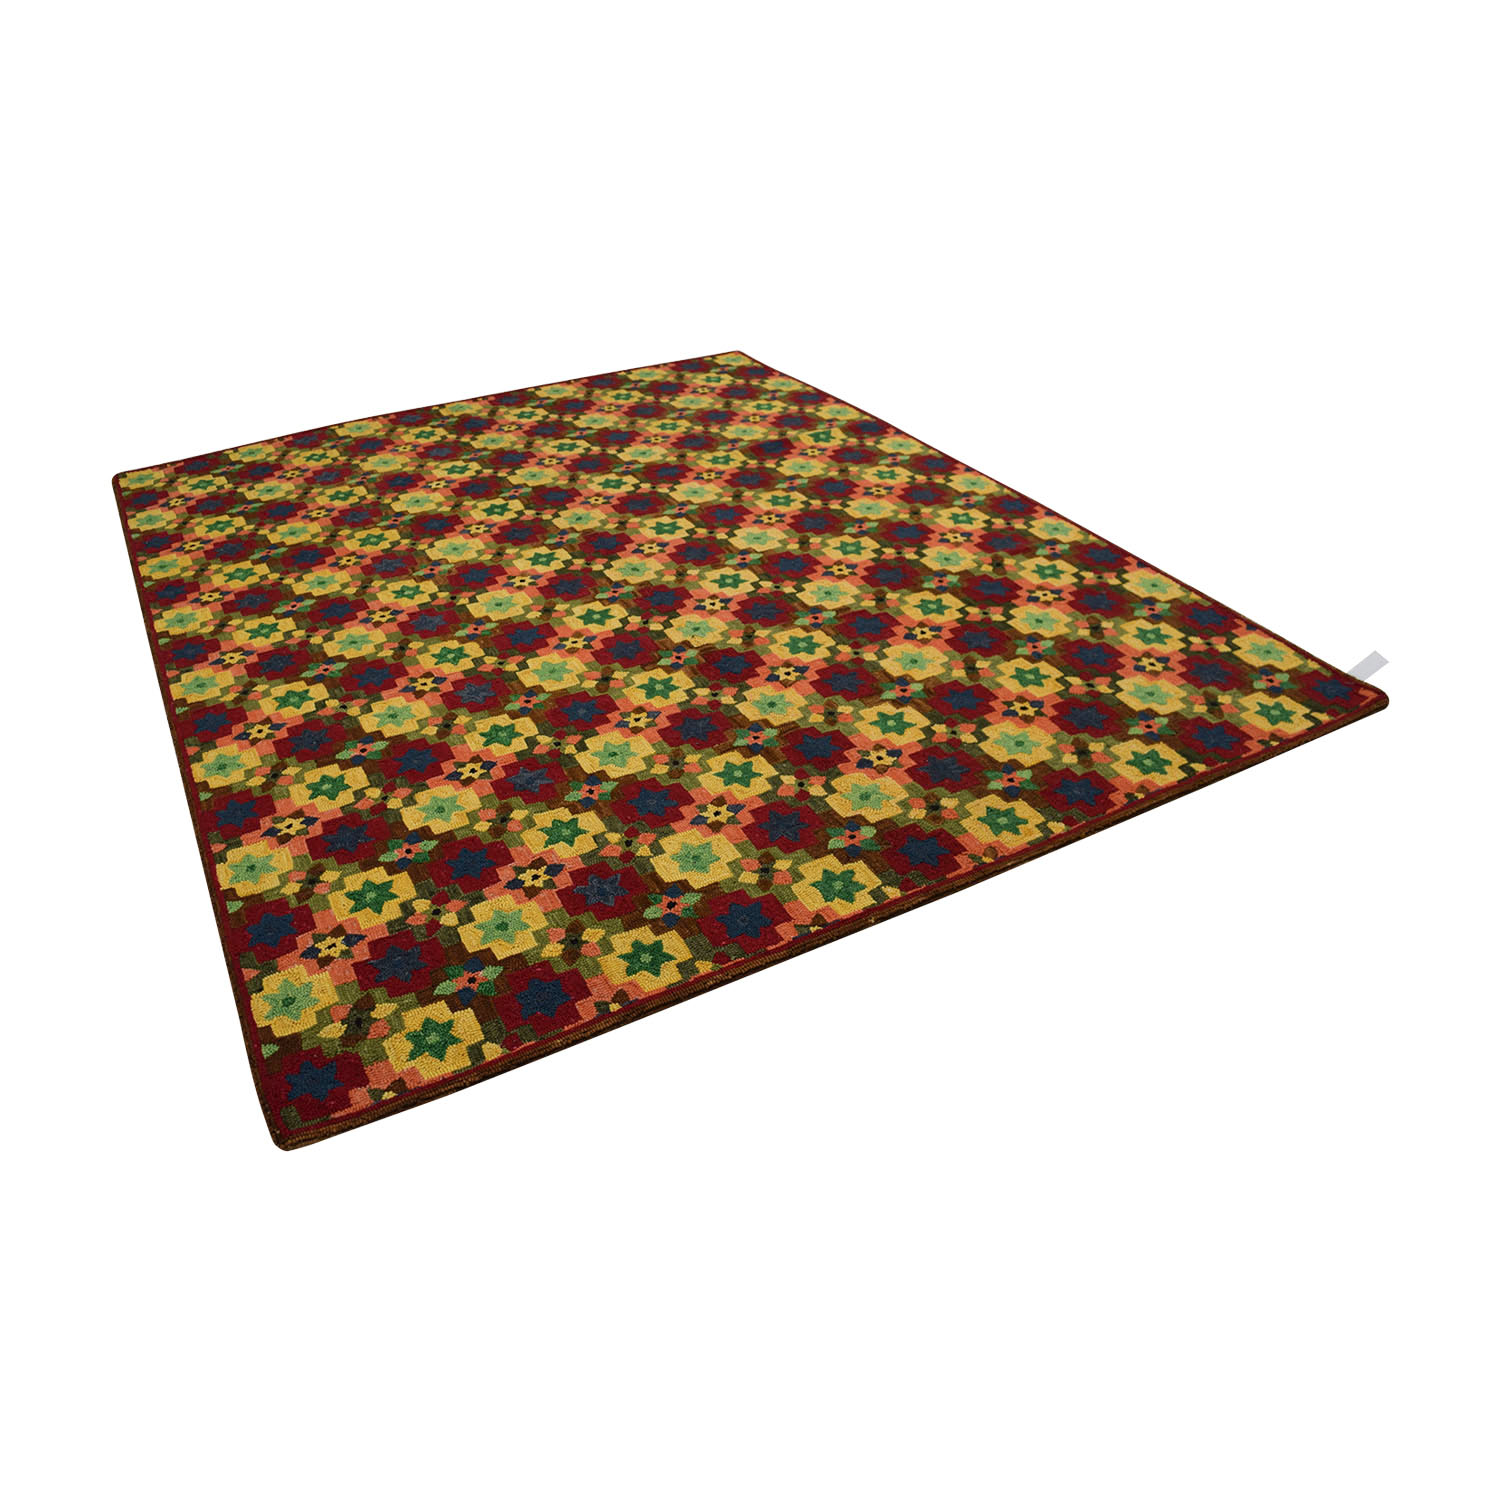 Obeetee Obeetee Hand Hooked Multi Colored Floral Rug on sale